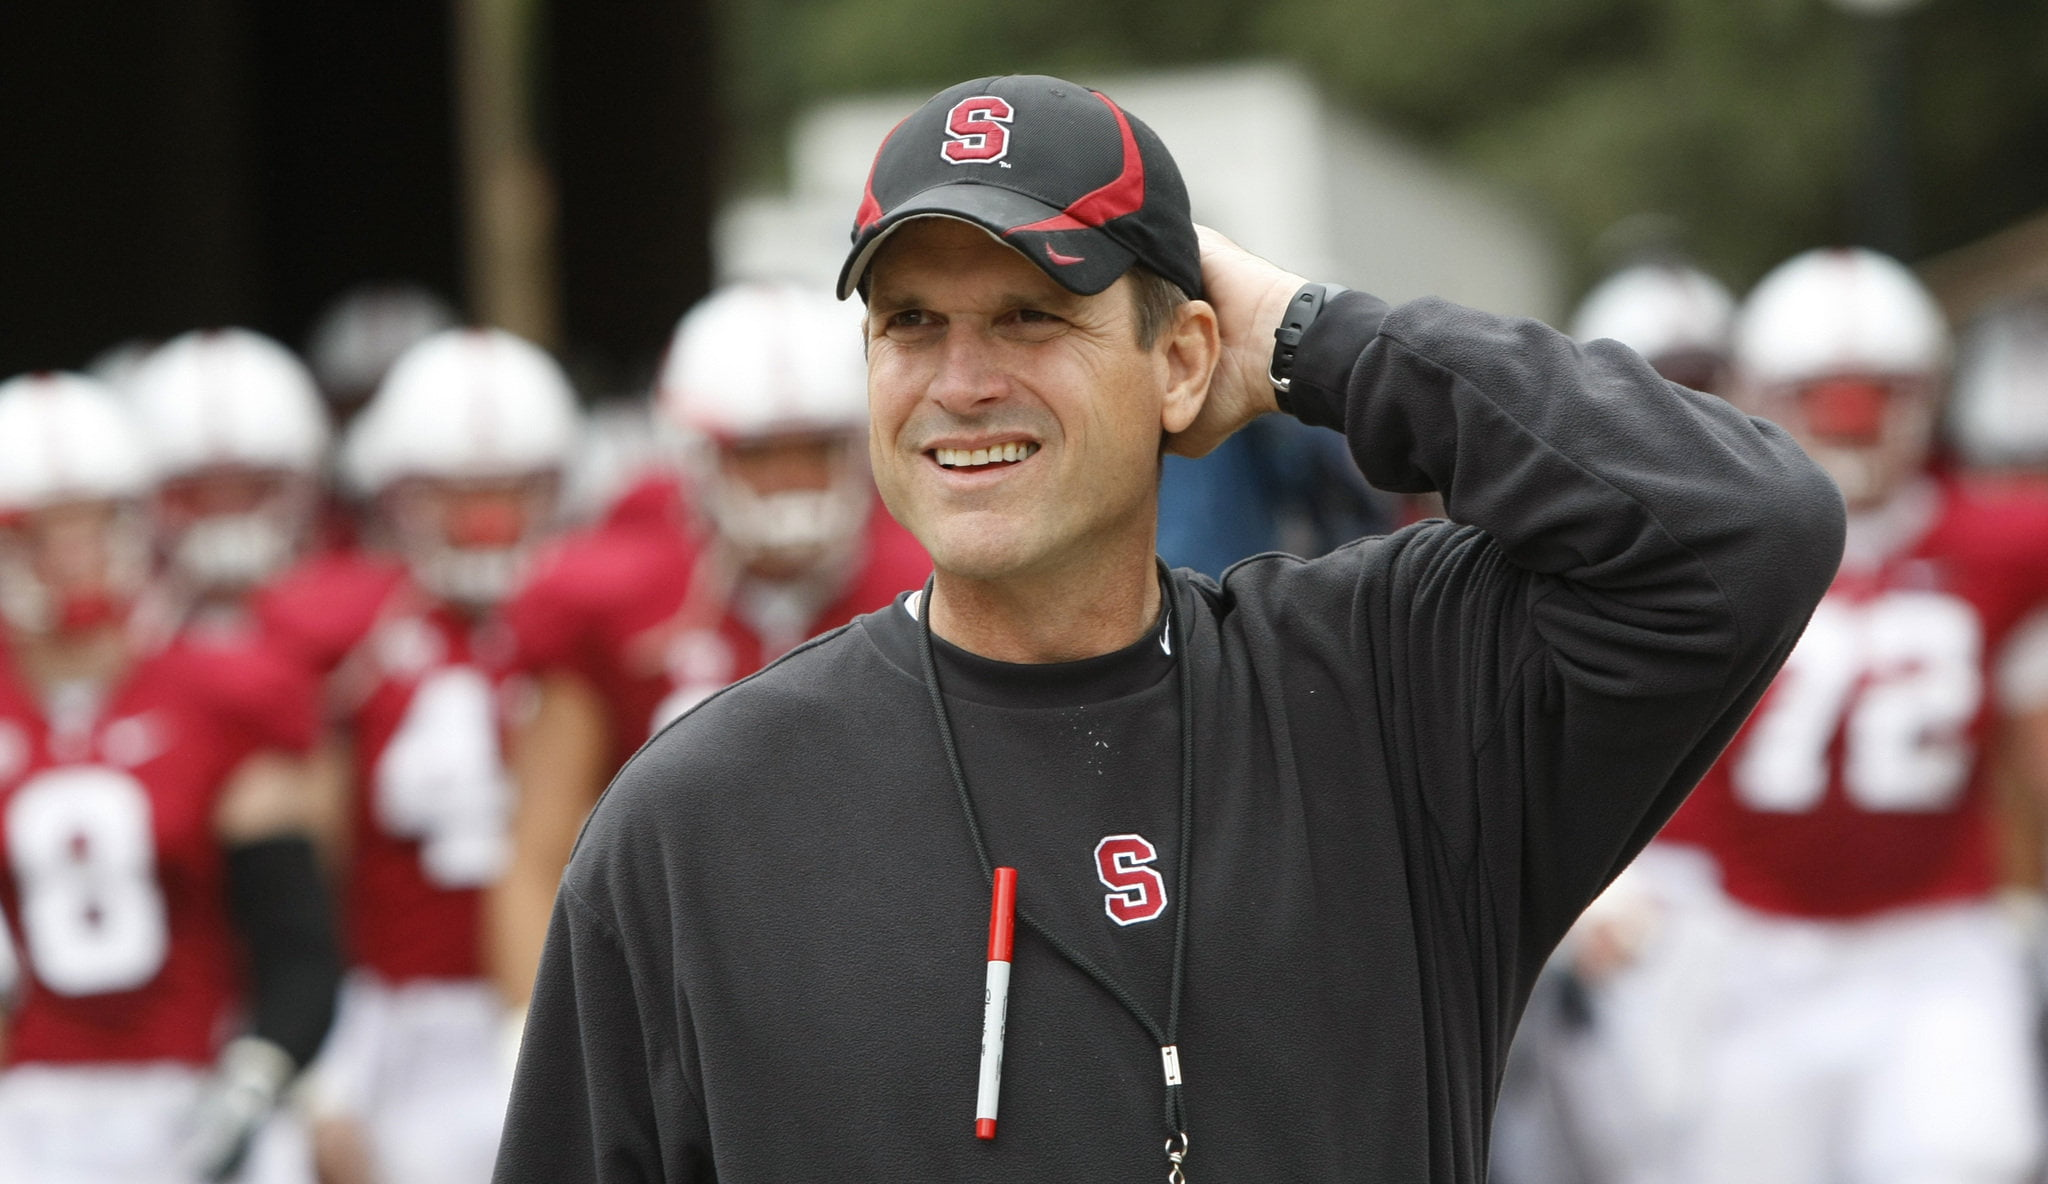 Courtesy of Cleveland.com: Back in 2011, Harbaugh chose the 49ers over Michigan.